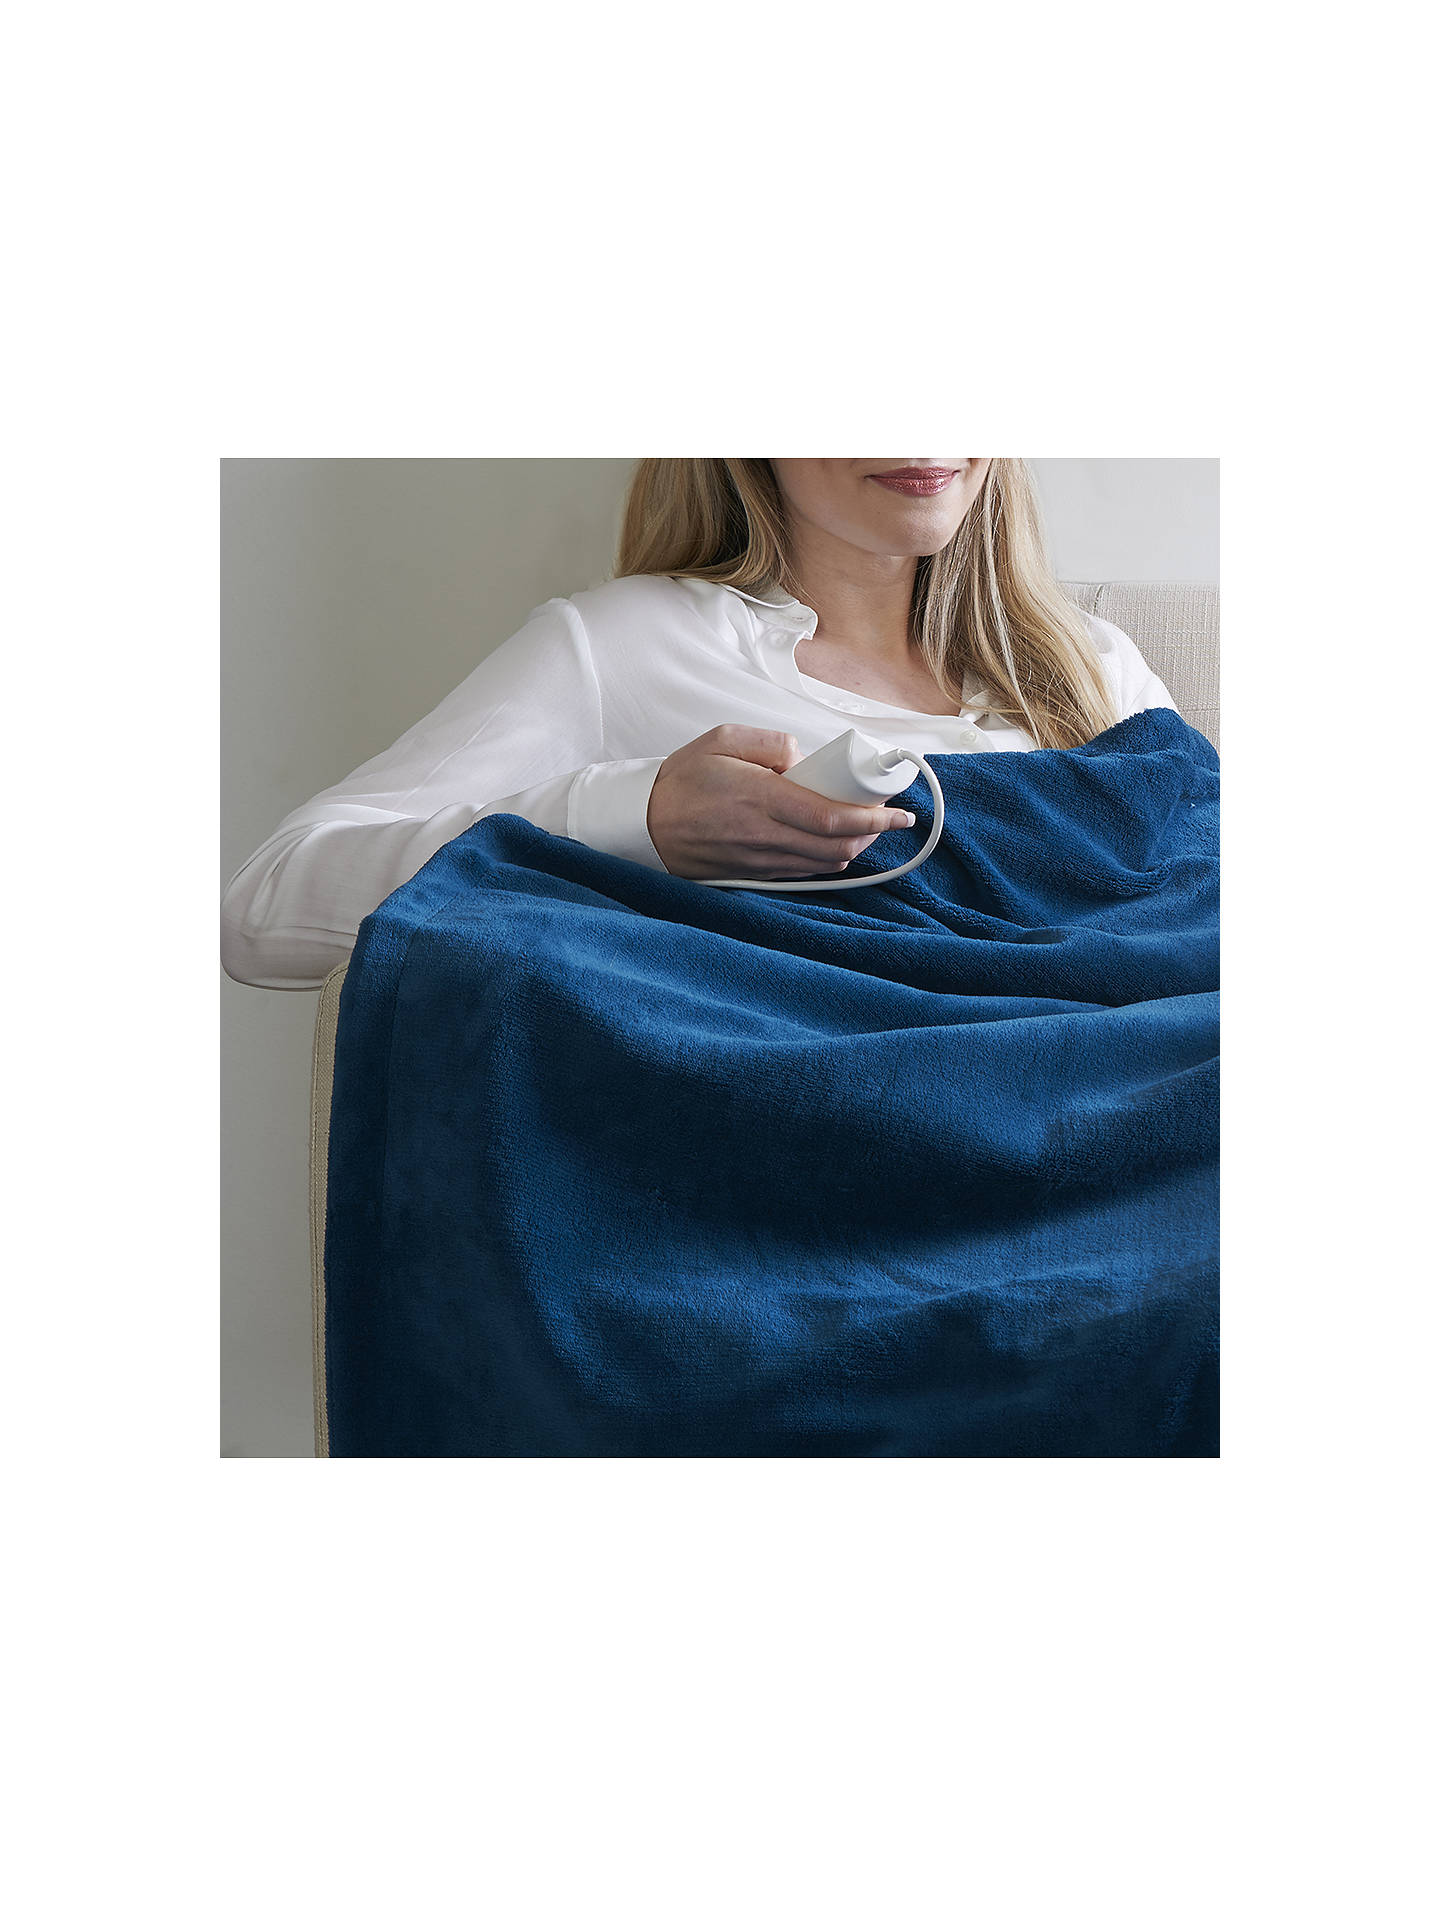 Buy Dreamland Relaxwell Luxury Heated Throw, Teal Online at johnlewis.com